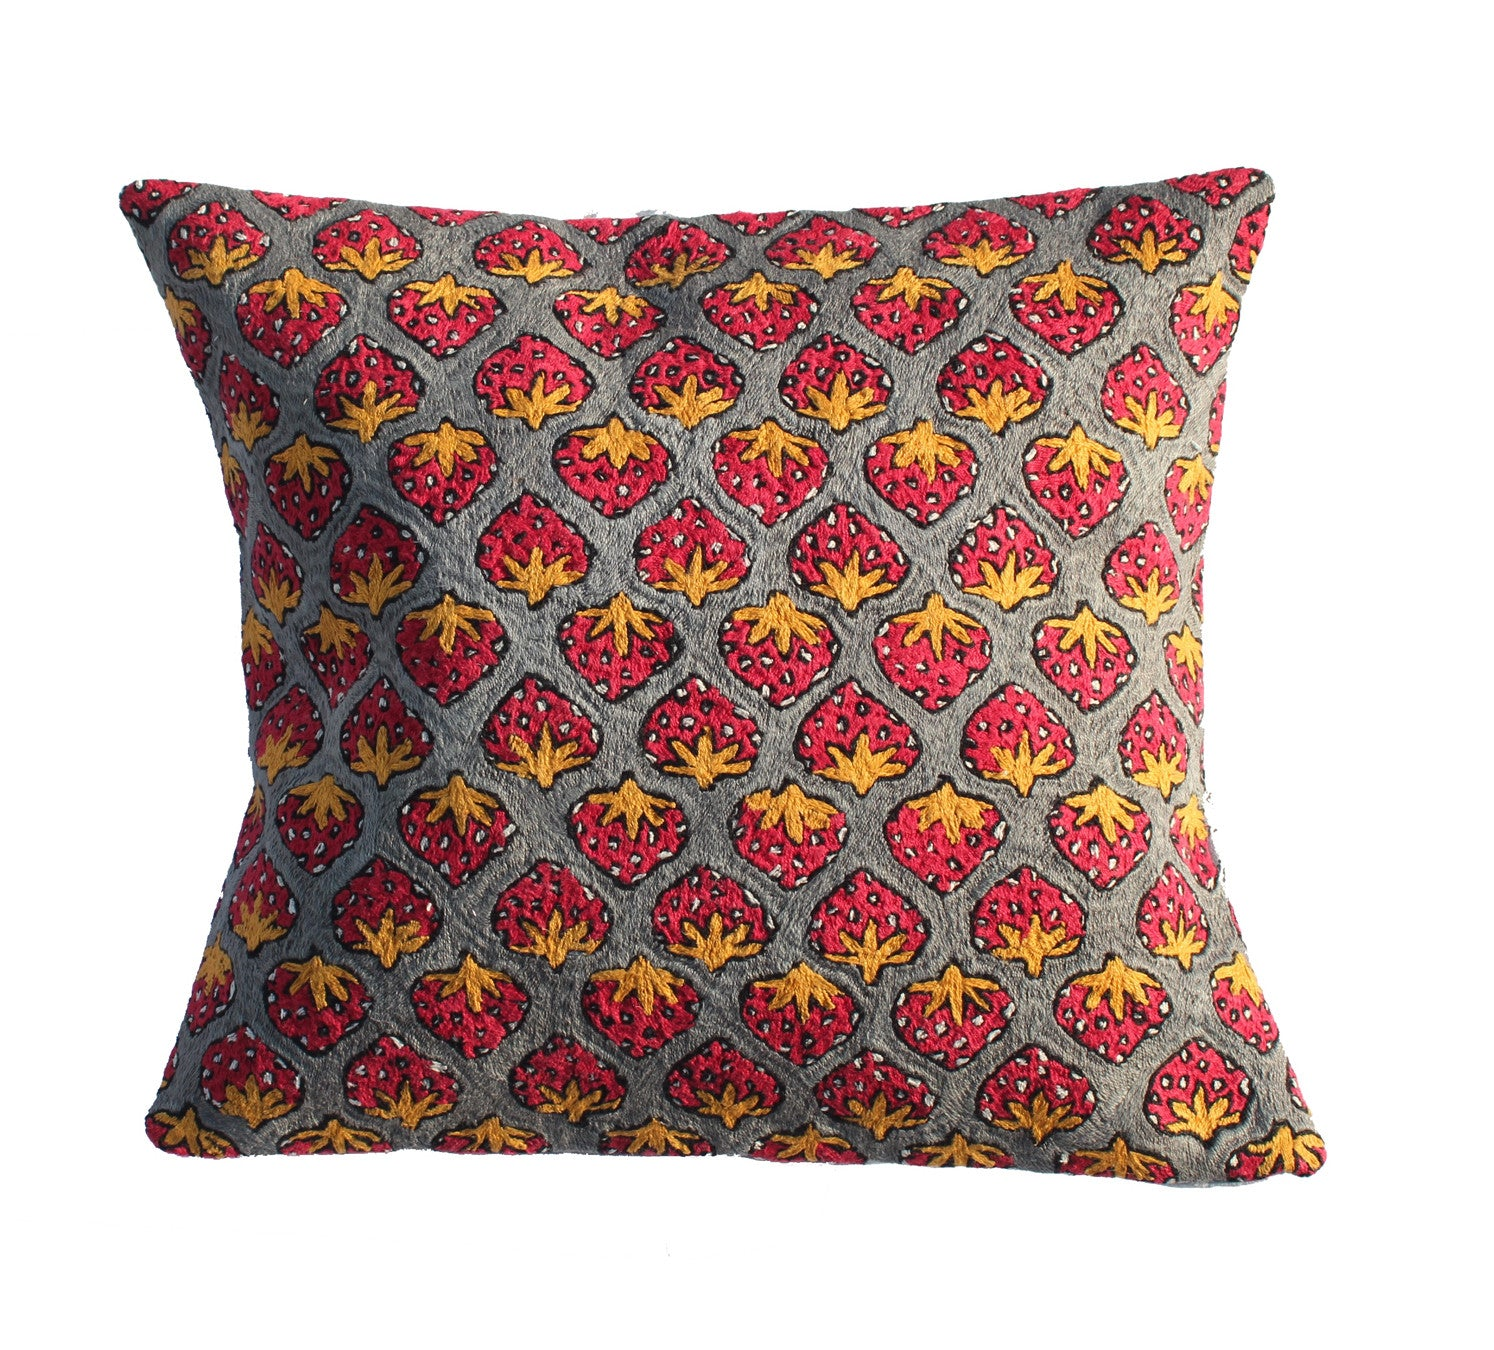 Field of Strawberries Cushion